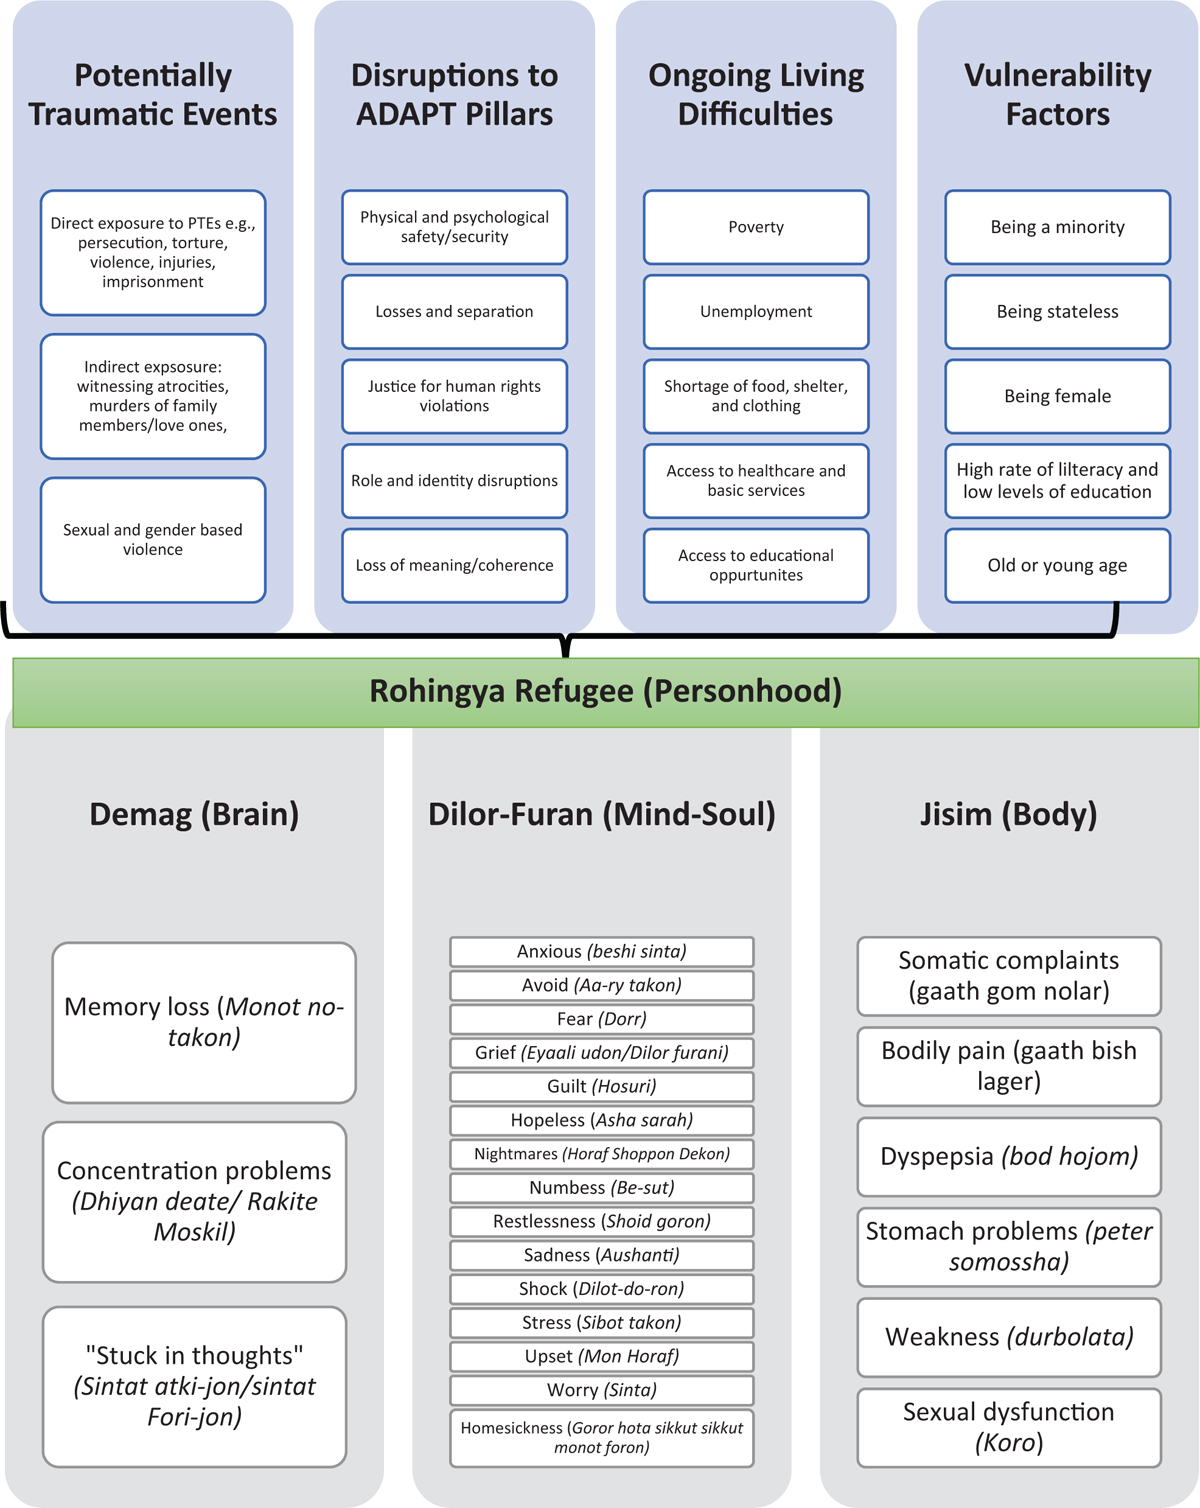 Figure 3 Rohingya's conceptualisation of personhood and how the refugee trauma and experience impact on their health and emotional wellbeing (adapted from Tay et al., 2018)